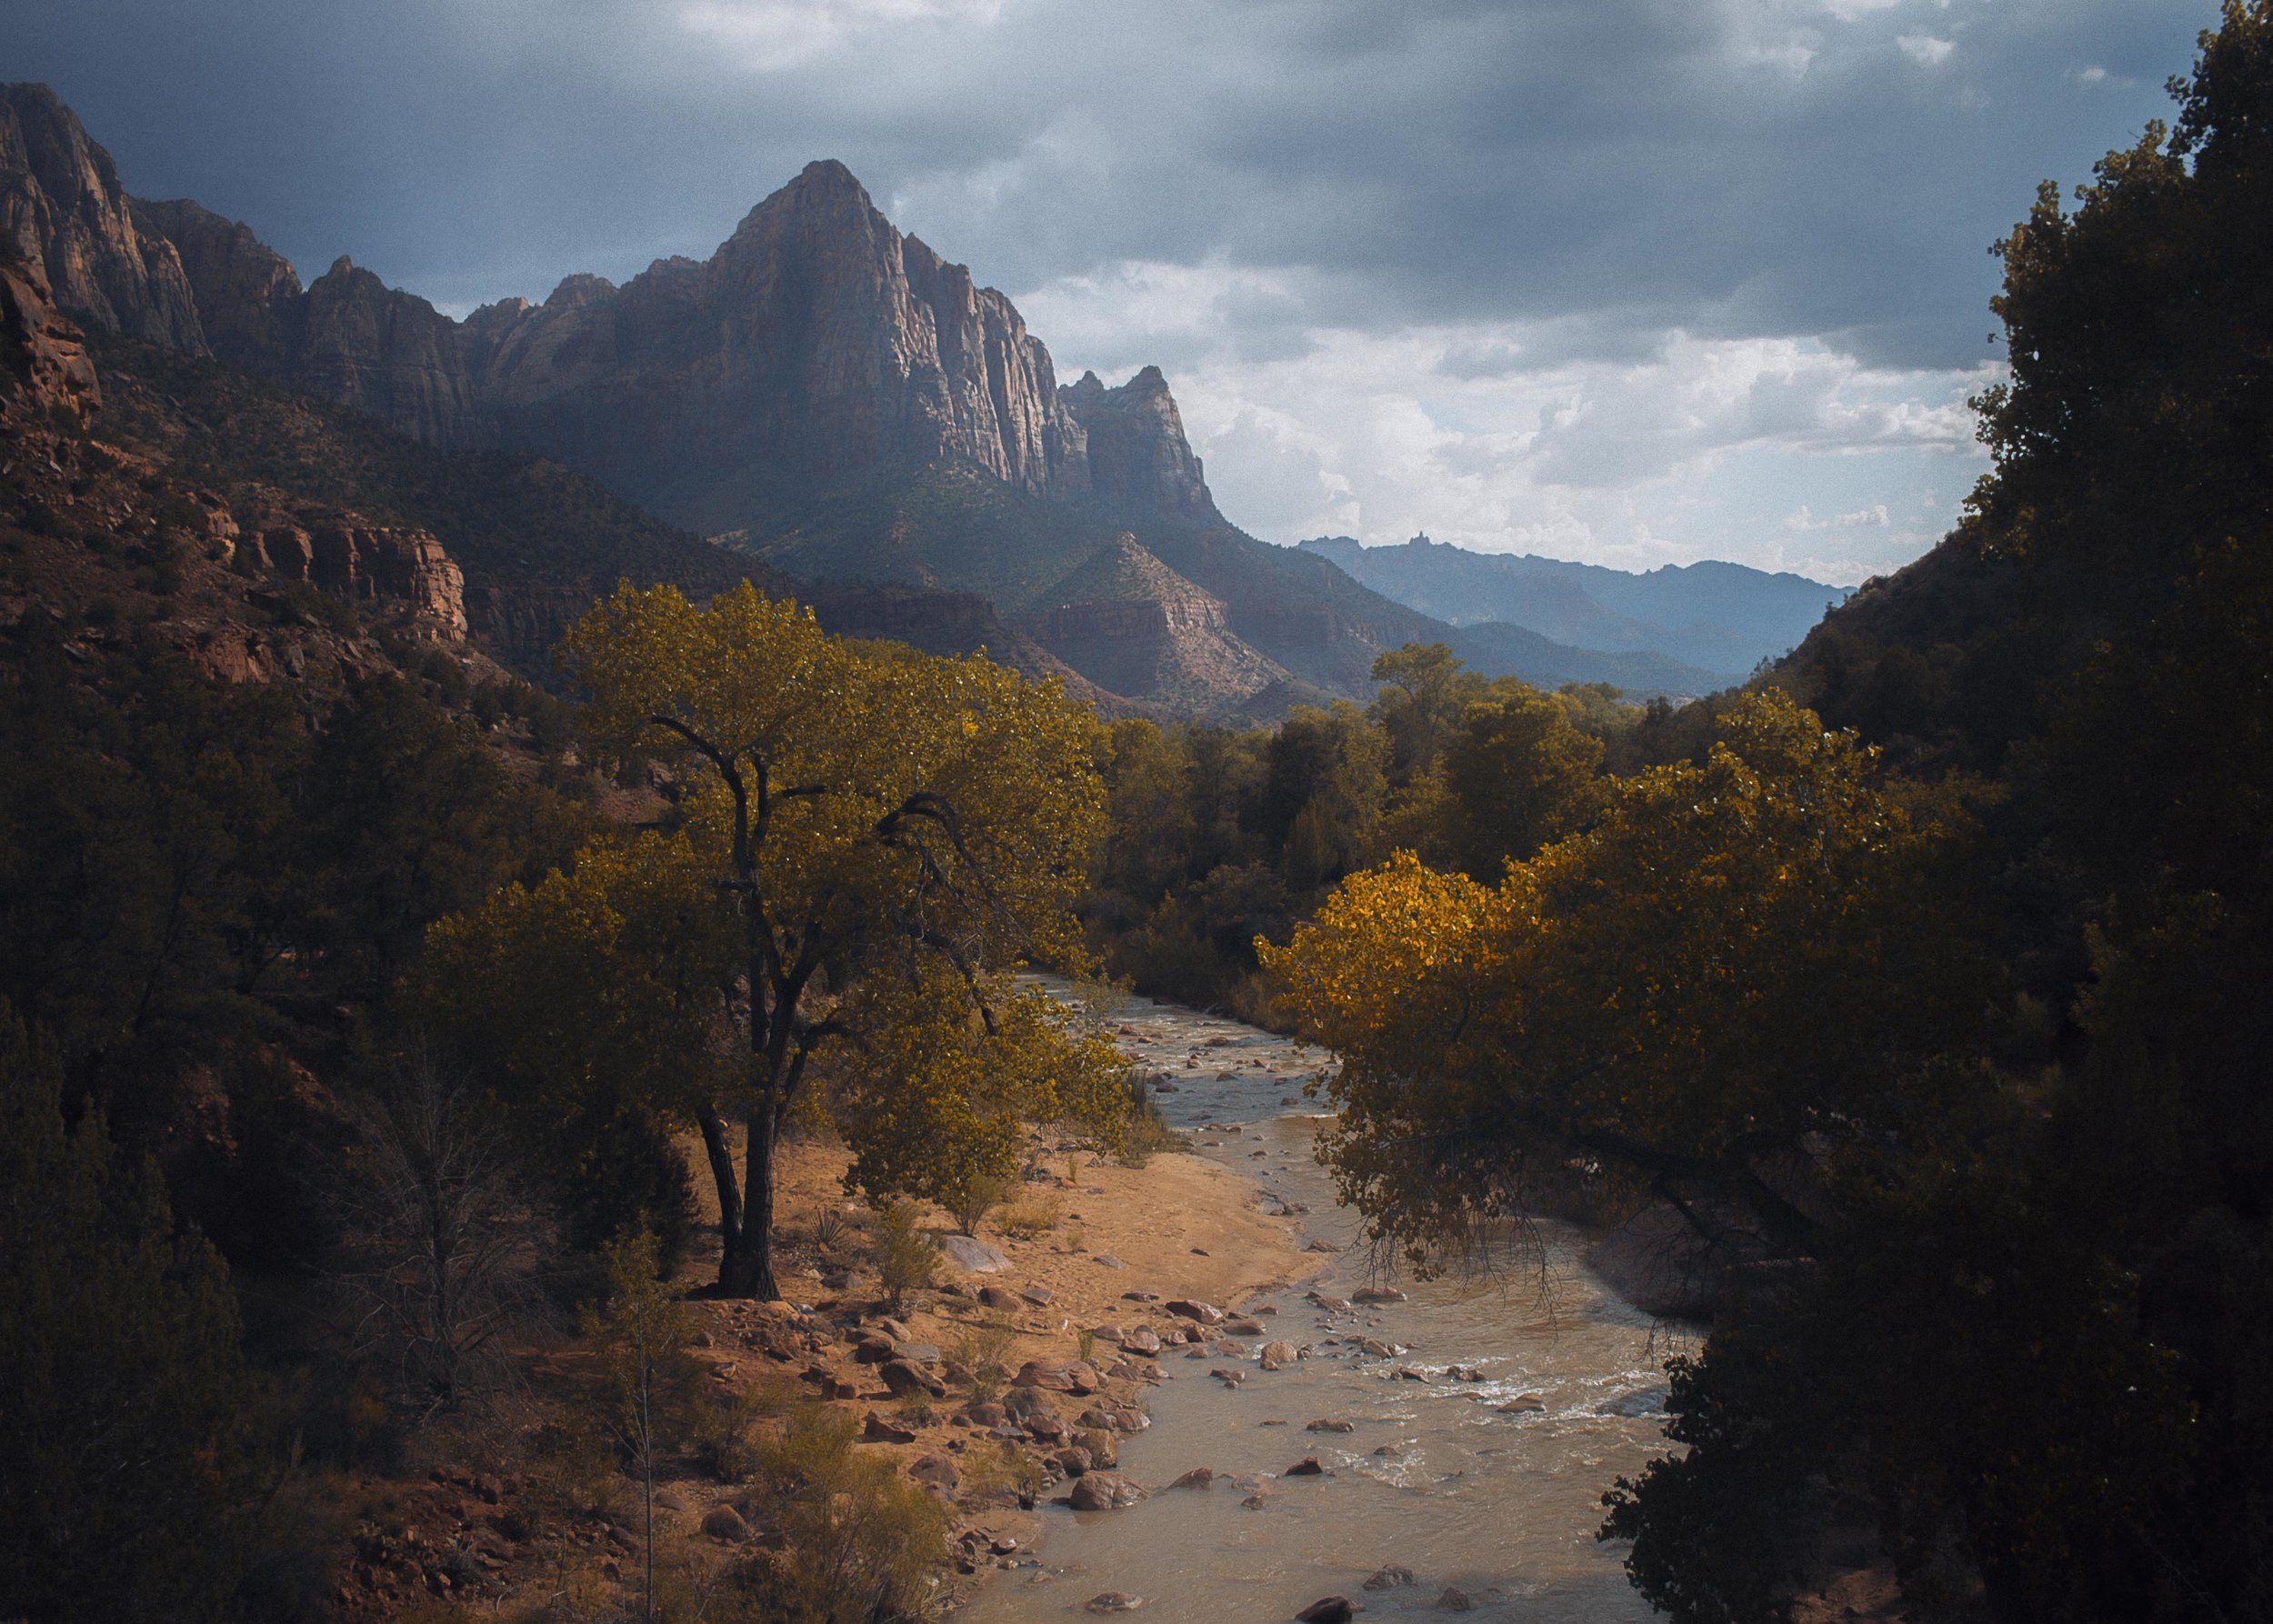 Watchman, 2015  Zion National Park, Utah, United States  24mm f/2.8 1/1000 sec ISO 100